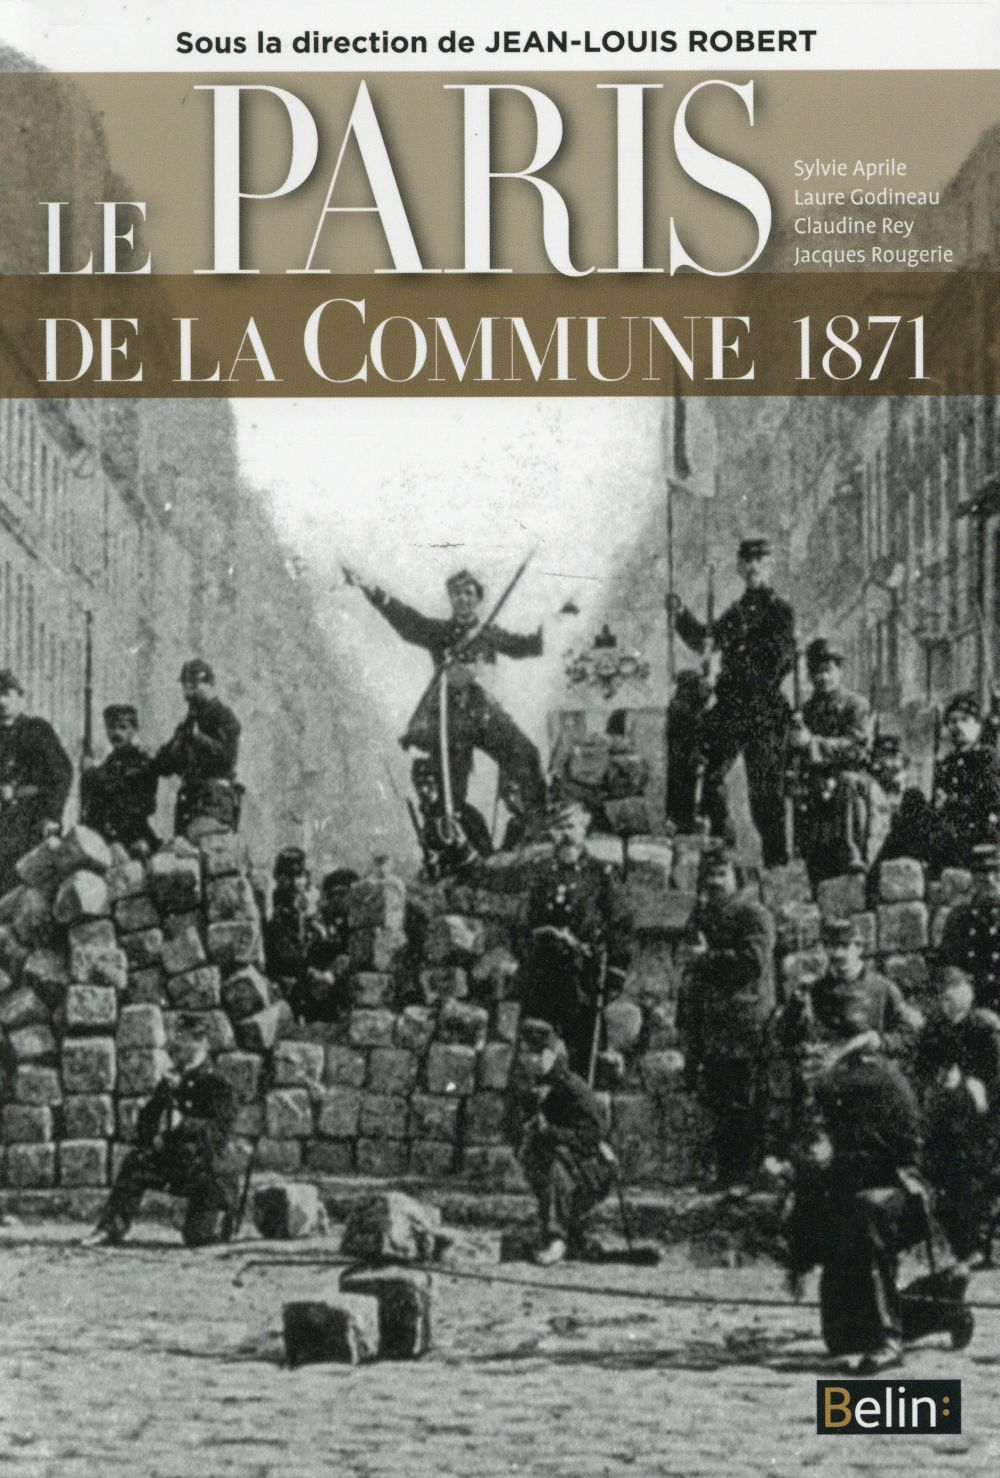 LE PARIS DE LA COMMUNE 1871